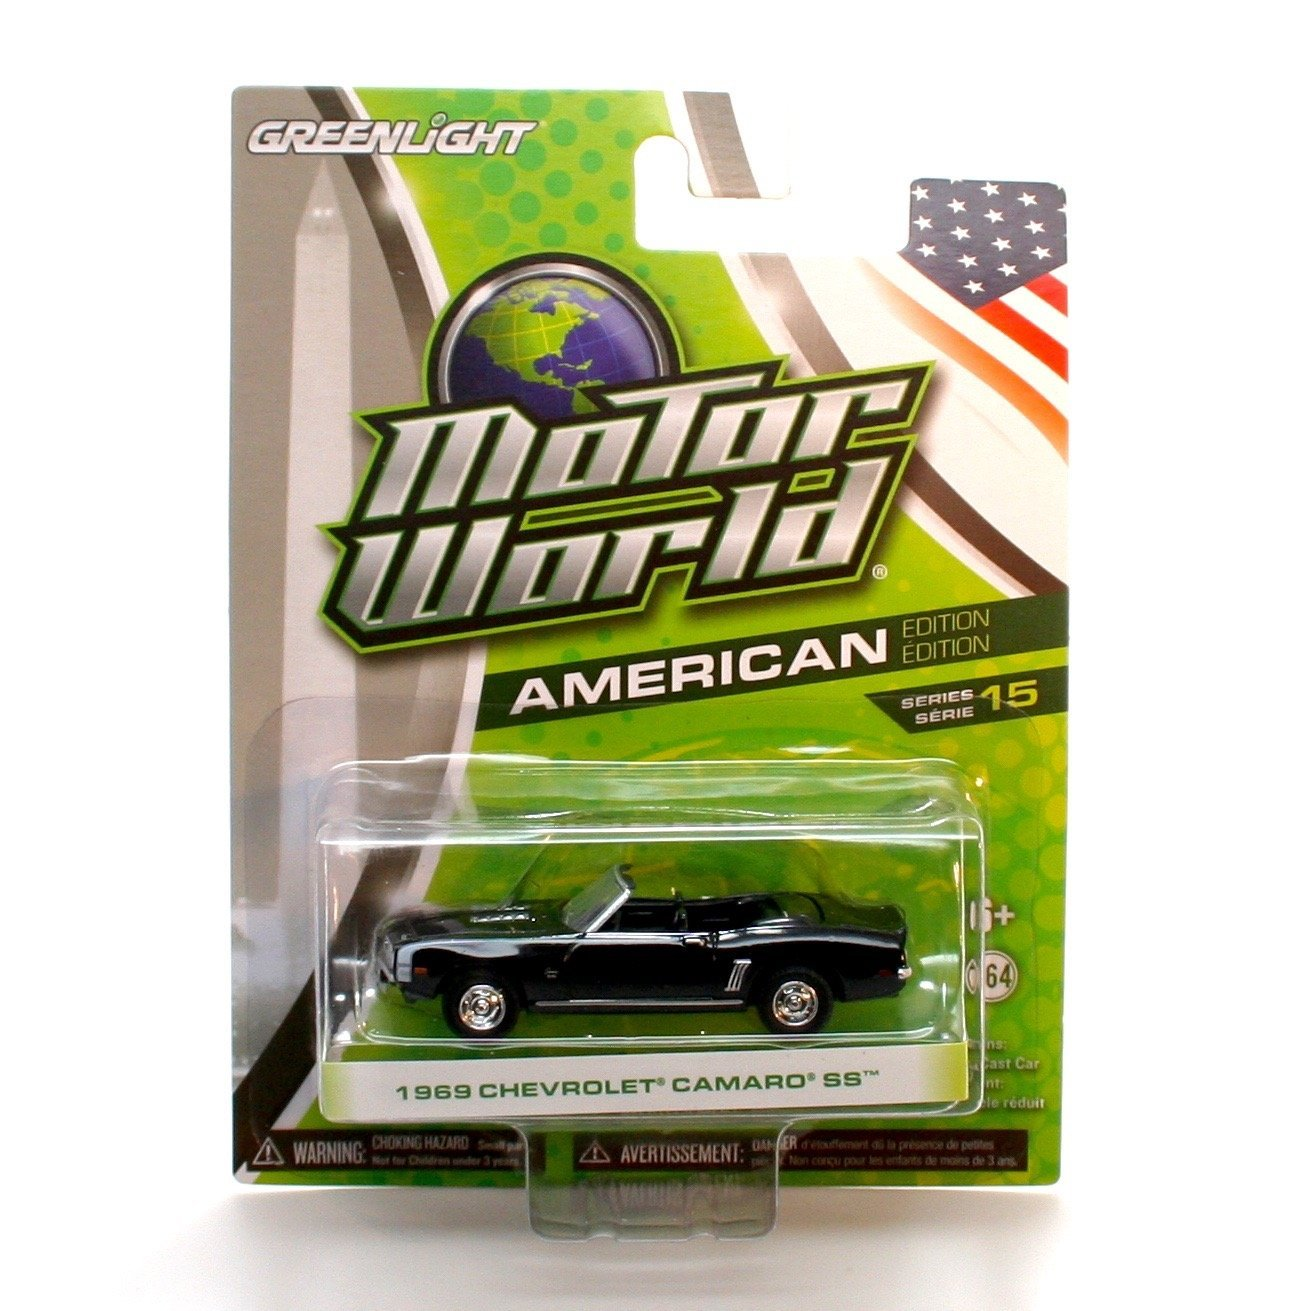 1969 CHEVROLET CAMARO SS (Black) * Motor World Series 15 * 2016 Greenlight Collectibles American Edition 1:64 Scale Die-Cast Vehicle